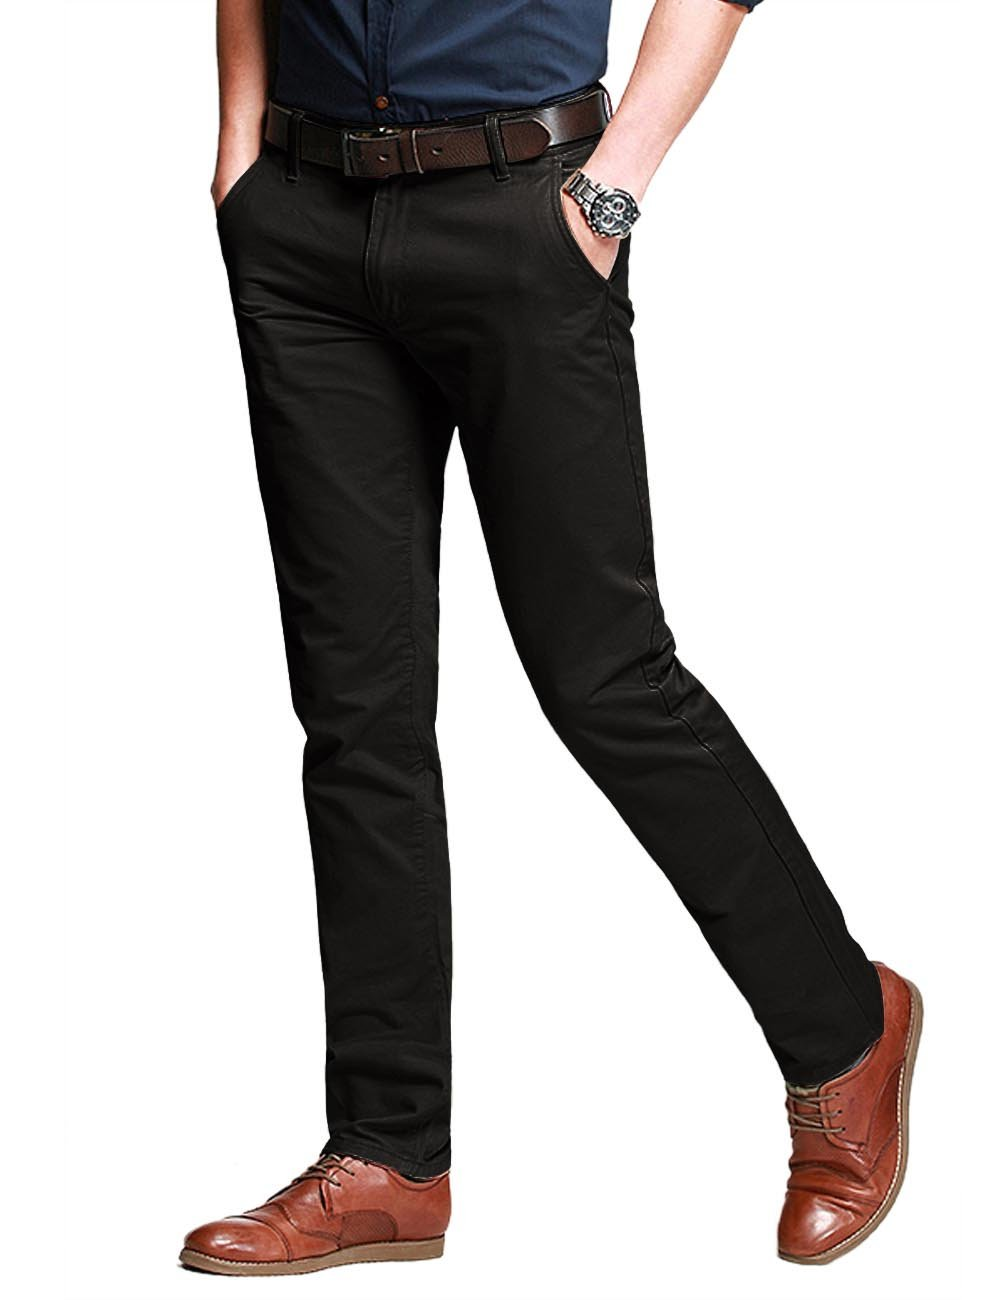 Match Men's Slim Stretchy Casual Trousers#8106